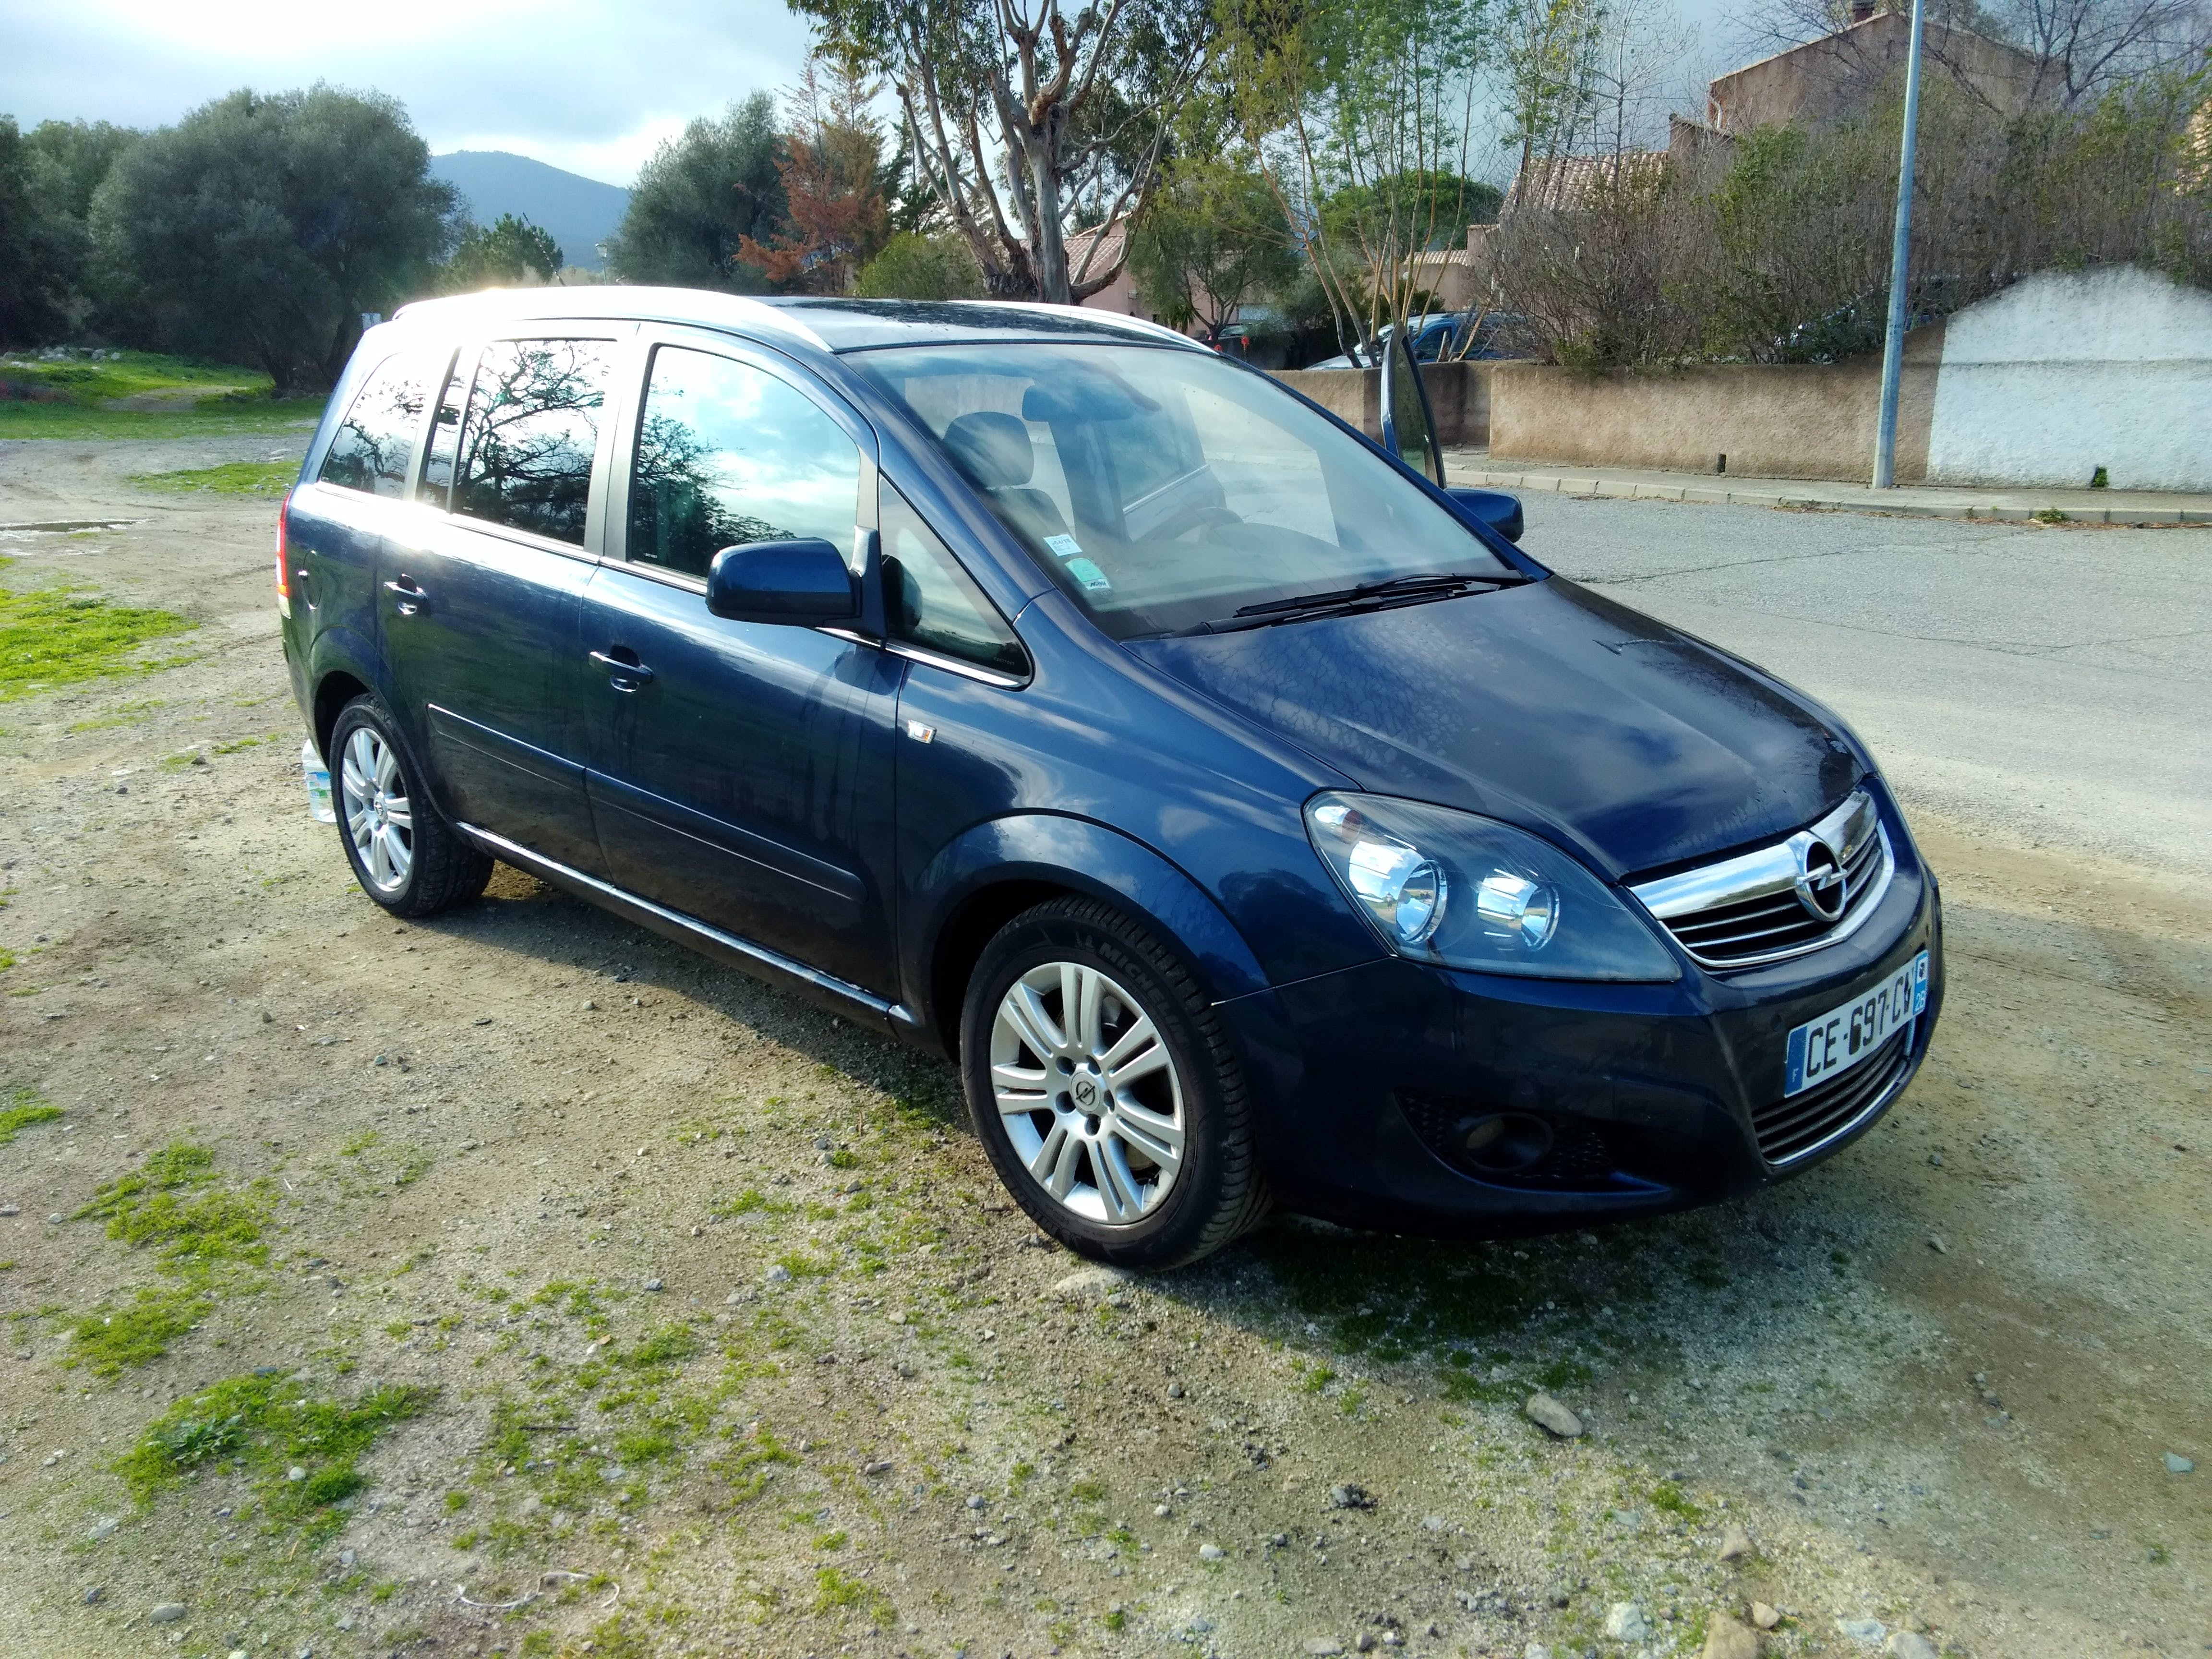 Opel Zafira, 2012, Diesel, 7 places